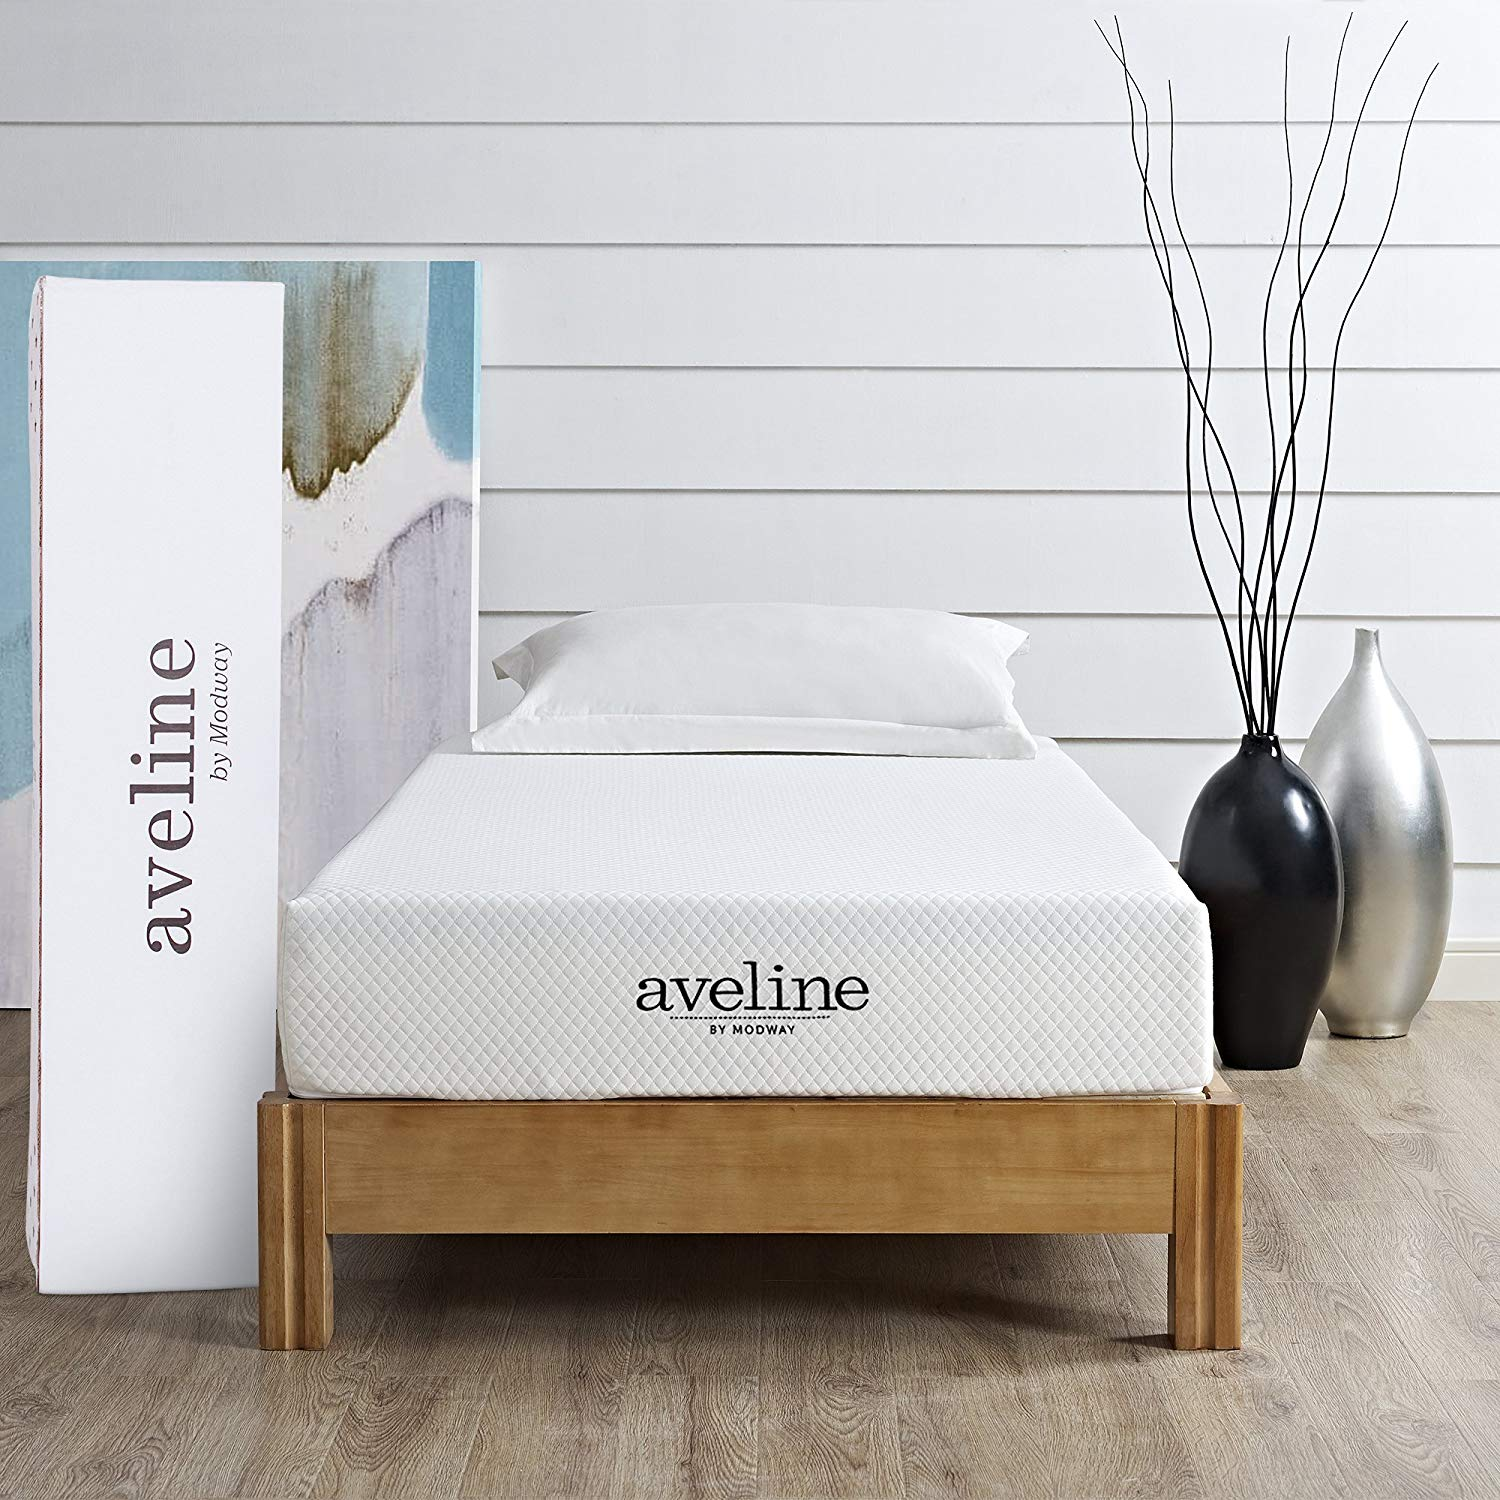 Modway Aveline Best Mattress for Kids review by www.snoremagazine.com